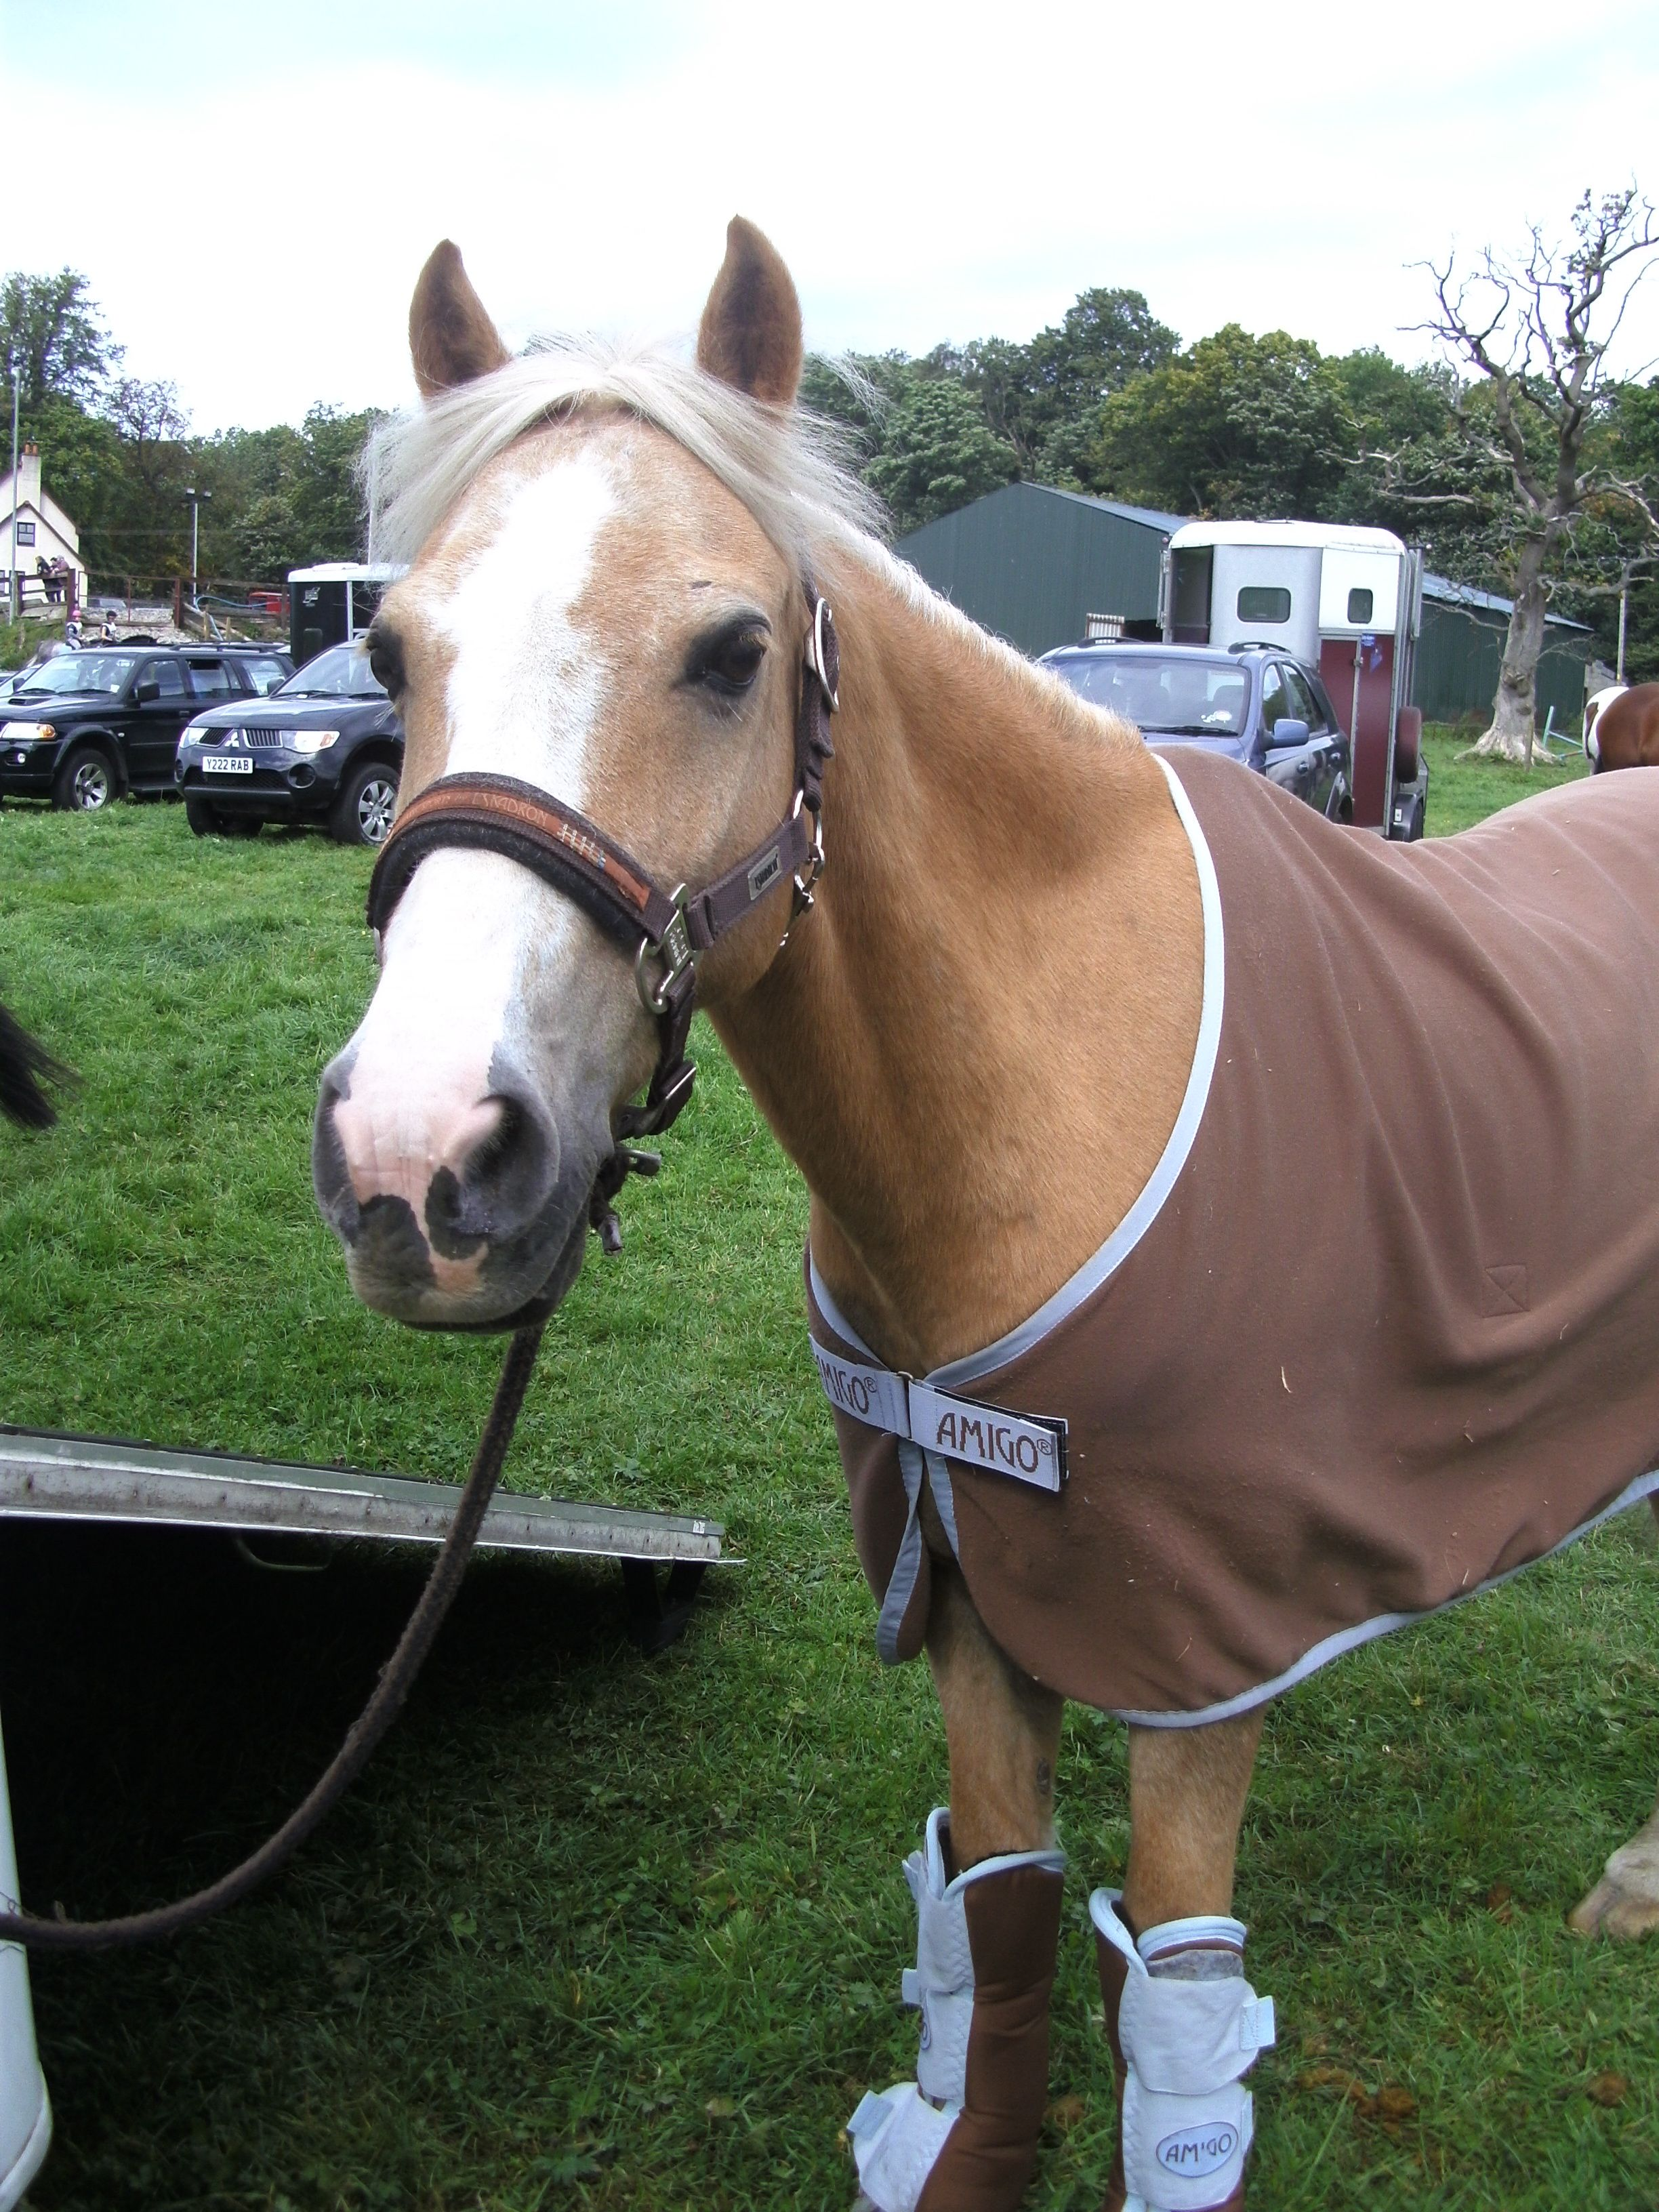 Free Foals For Adoption Uk Horses For Sale Adoption Buy Sell Adpost Com Classifieds Horses For Sale Horses Free Horses